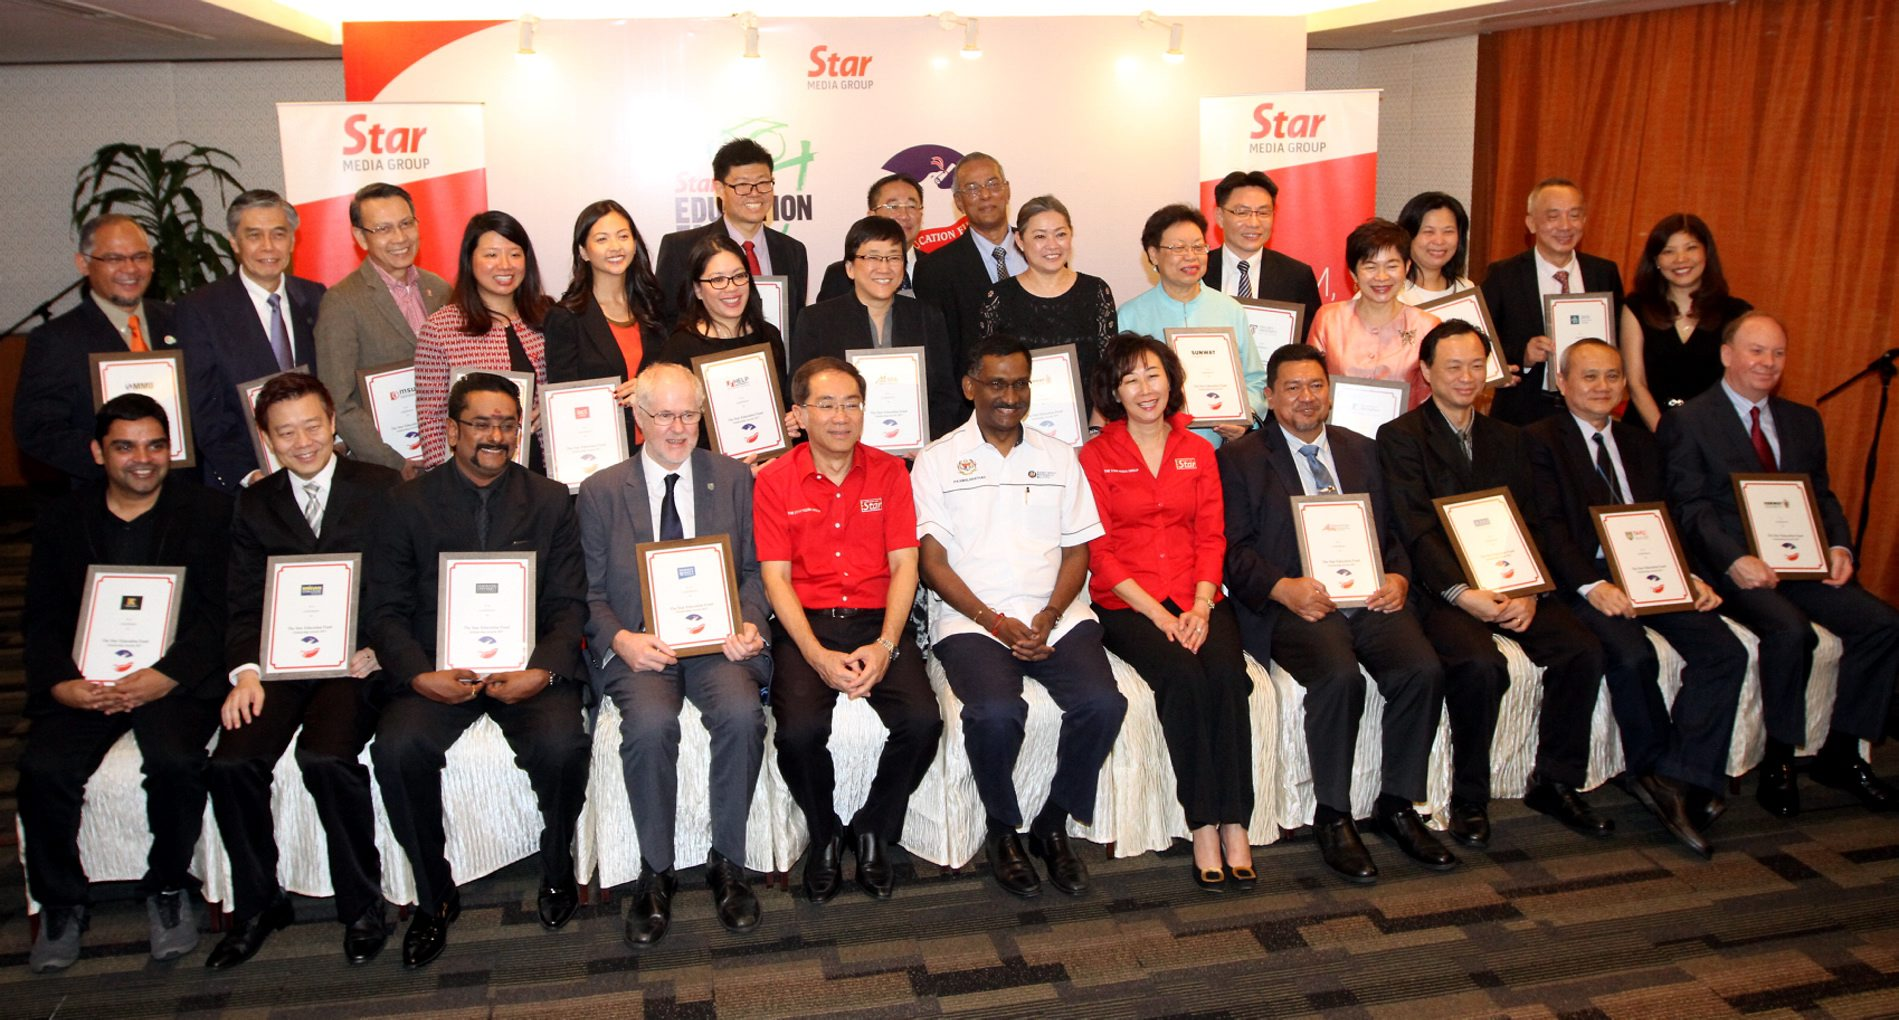 Kamalanathan (sixth from left) with Kan (fifth from left) and Star Media Group Bhd editor-in-chief Datuk Leanne Goh (seventh from left) and Star Education Fund manager Susanna Kuan (standing, far right) pose with the Star Education Fund's partners-in-education at the launch.